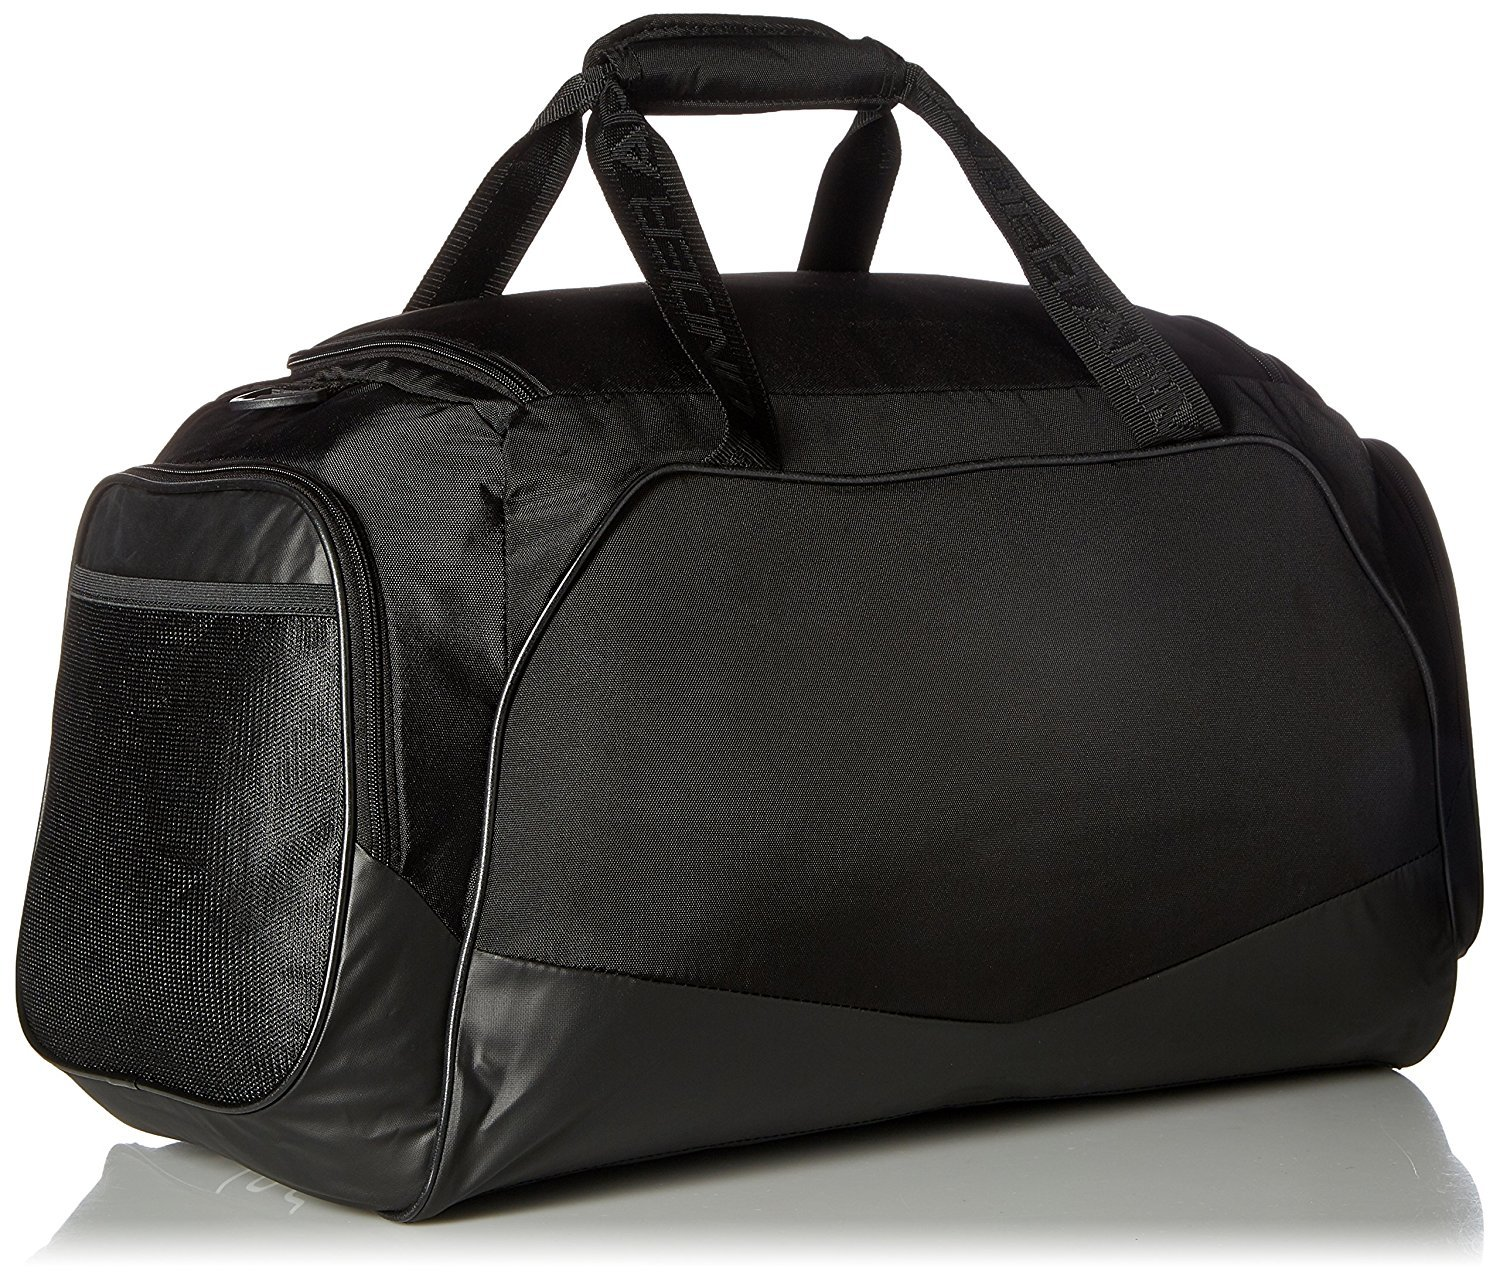 bb00f6db5624 Under Armour 001 Undeniable II Duffel Bags - Black